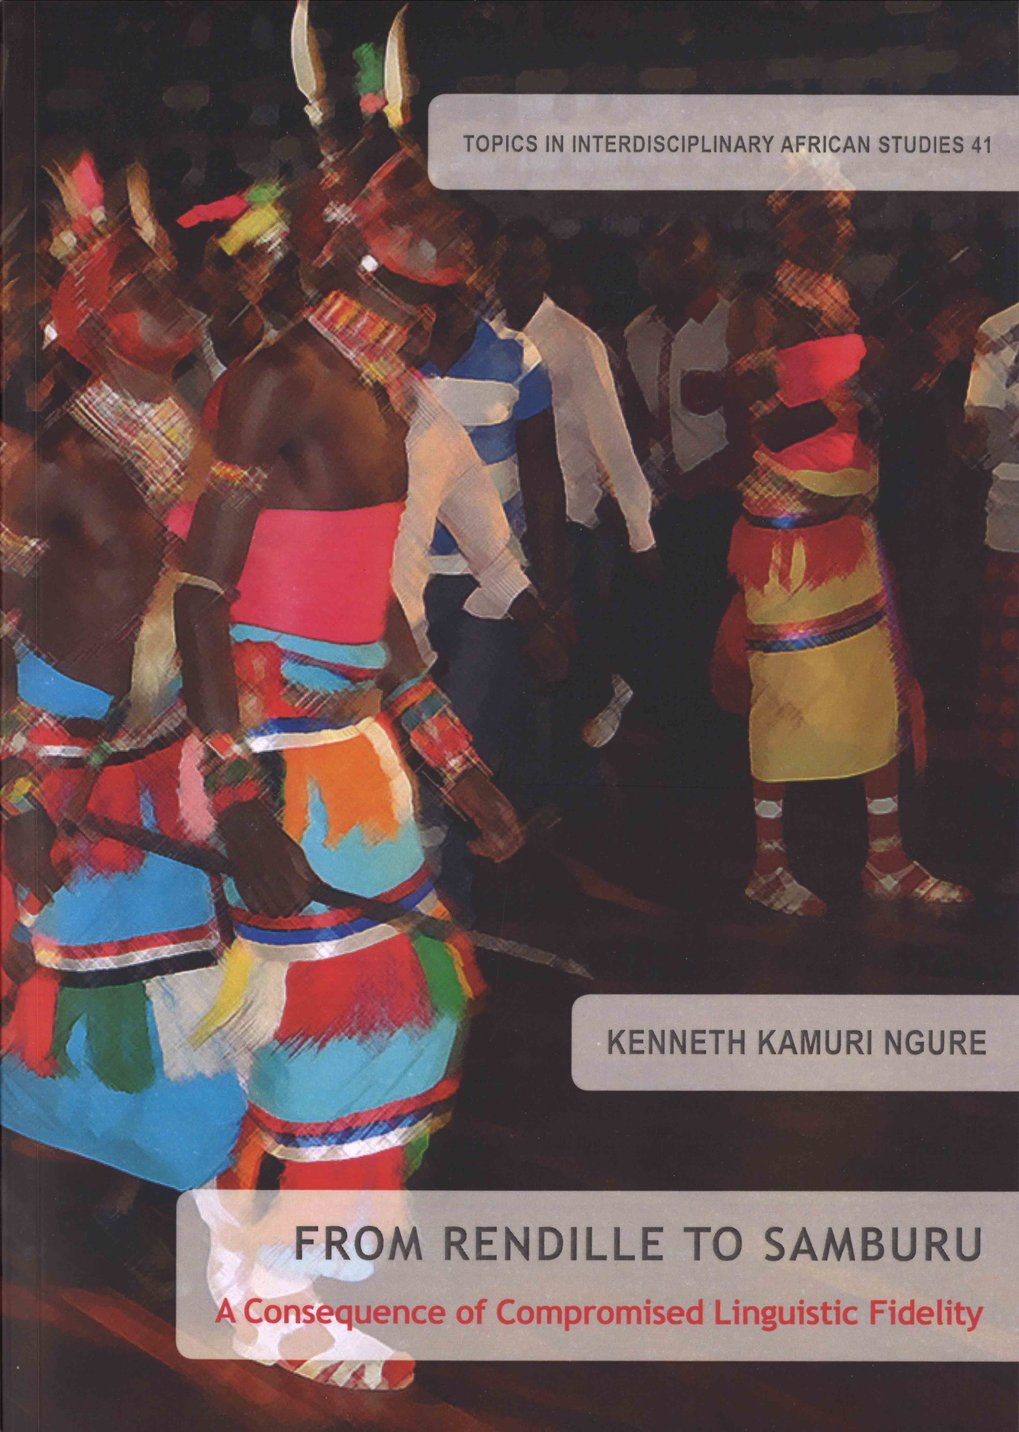 From Rendille to Samburu: a consequence of compromised linguistic fidelity